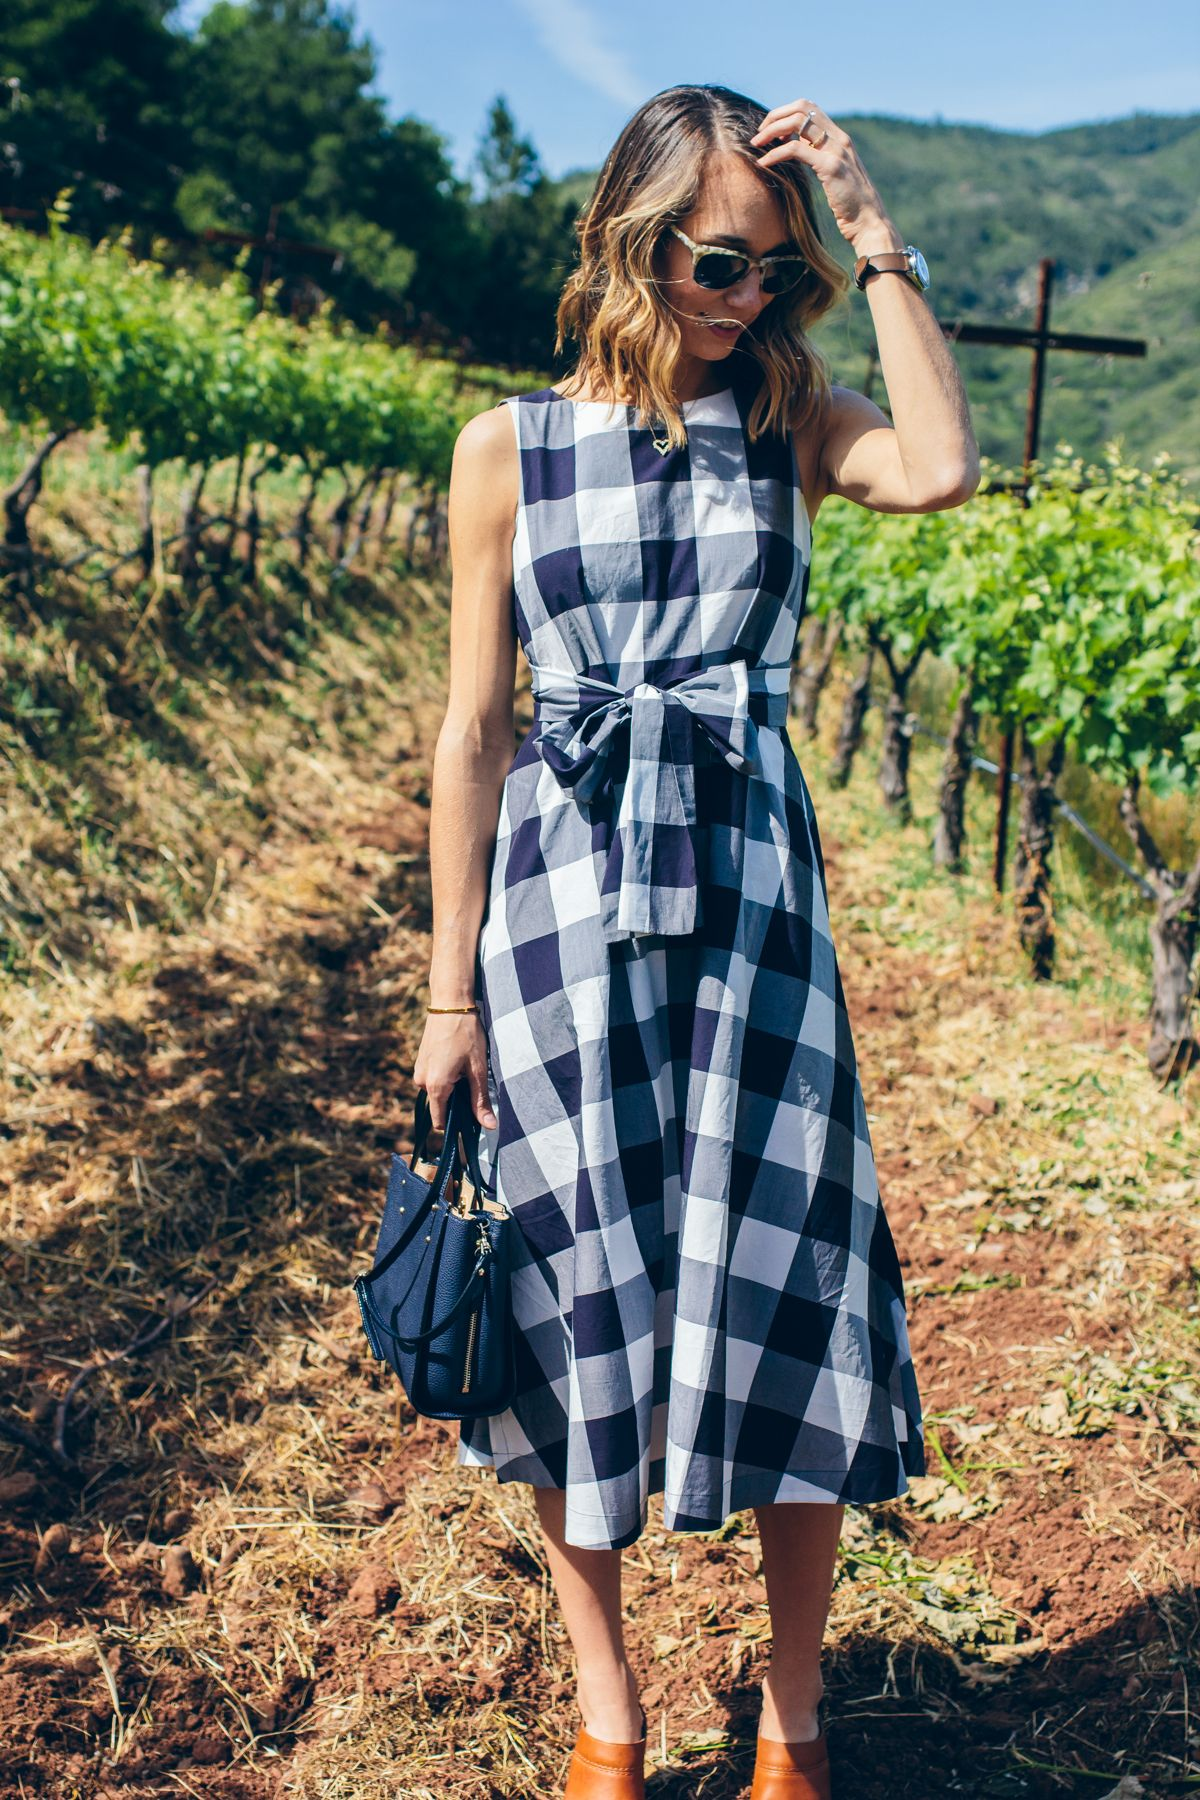 A Day In Sonoma The Fox She Gingham Outfit Fashion Gingham Dress [ 1800 x 1200 Pixel ]